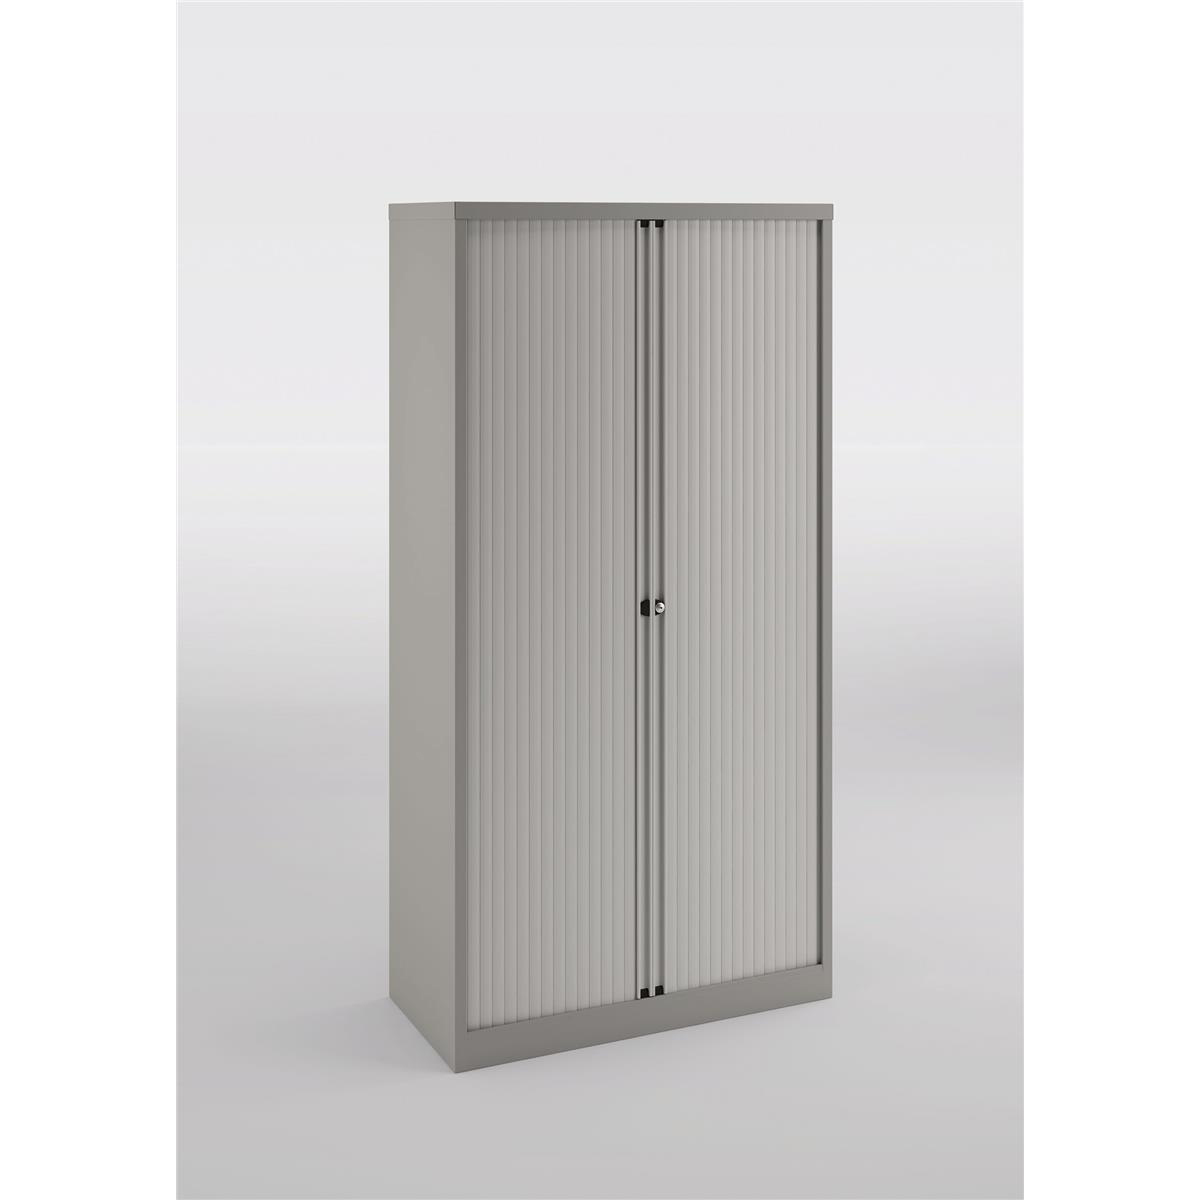 Trexus by Bisley Side Opening Tambour Door Cupboard 1000x470x1970-1985mm Grey/Grey Ref YETB1019.1